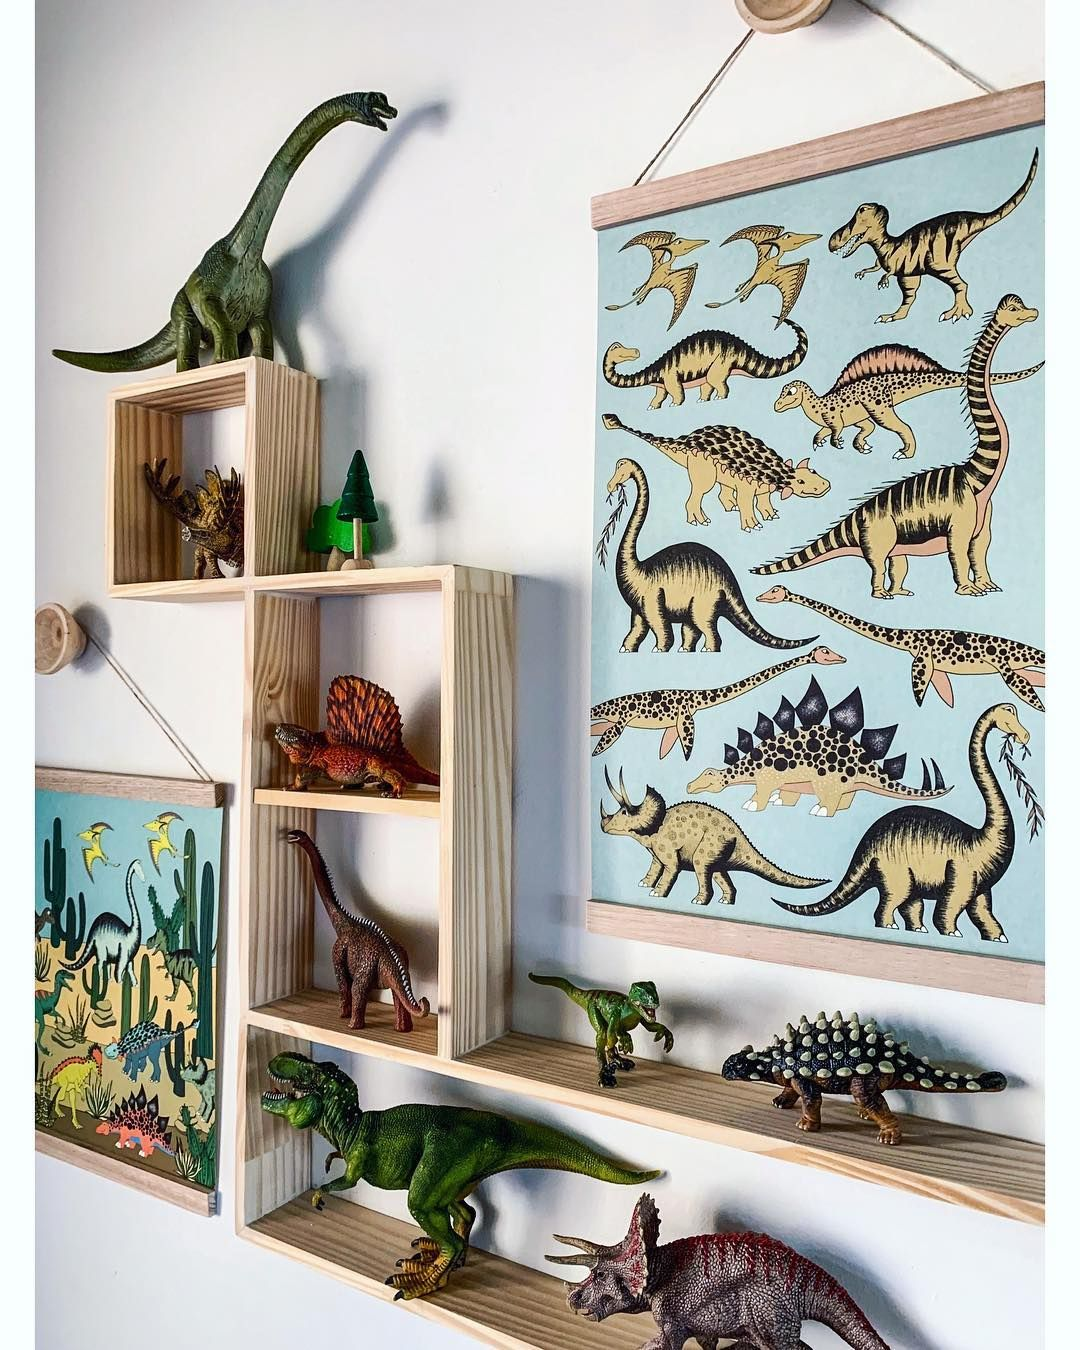 Dino Raw Kids Decor On Instagram Happily Hanging Together Is Our New Prehistoric Dino Desert Art Han In 2020 Dinosaur Room Decor Dinosaur Room Boys Bedroom Decor